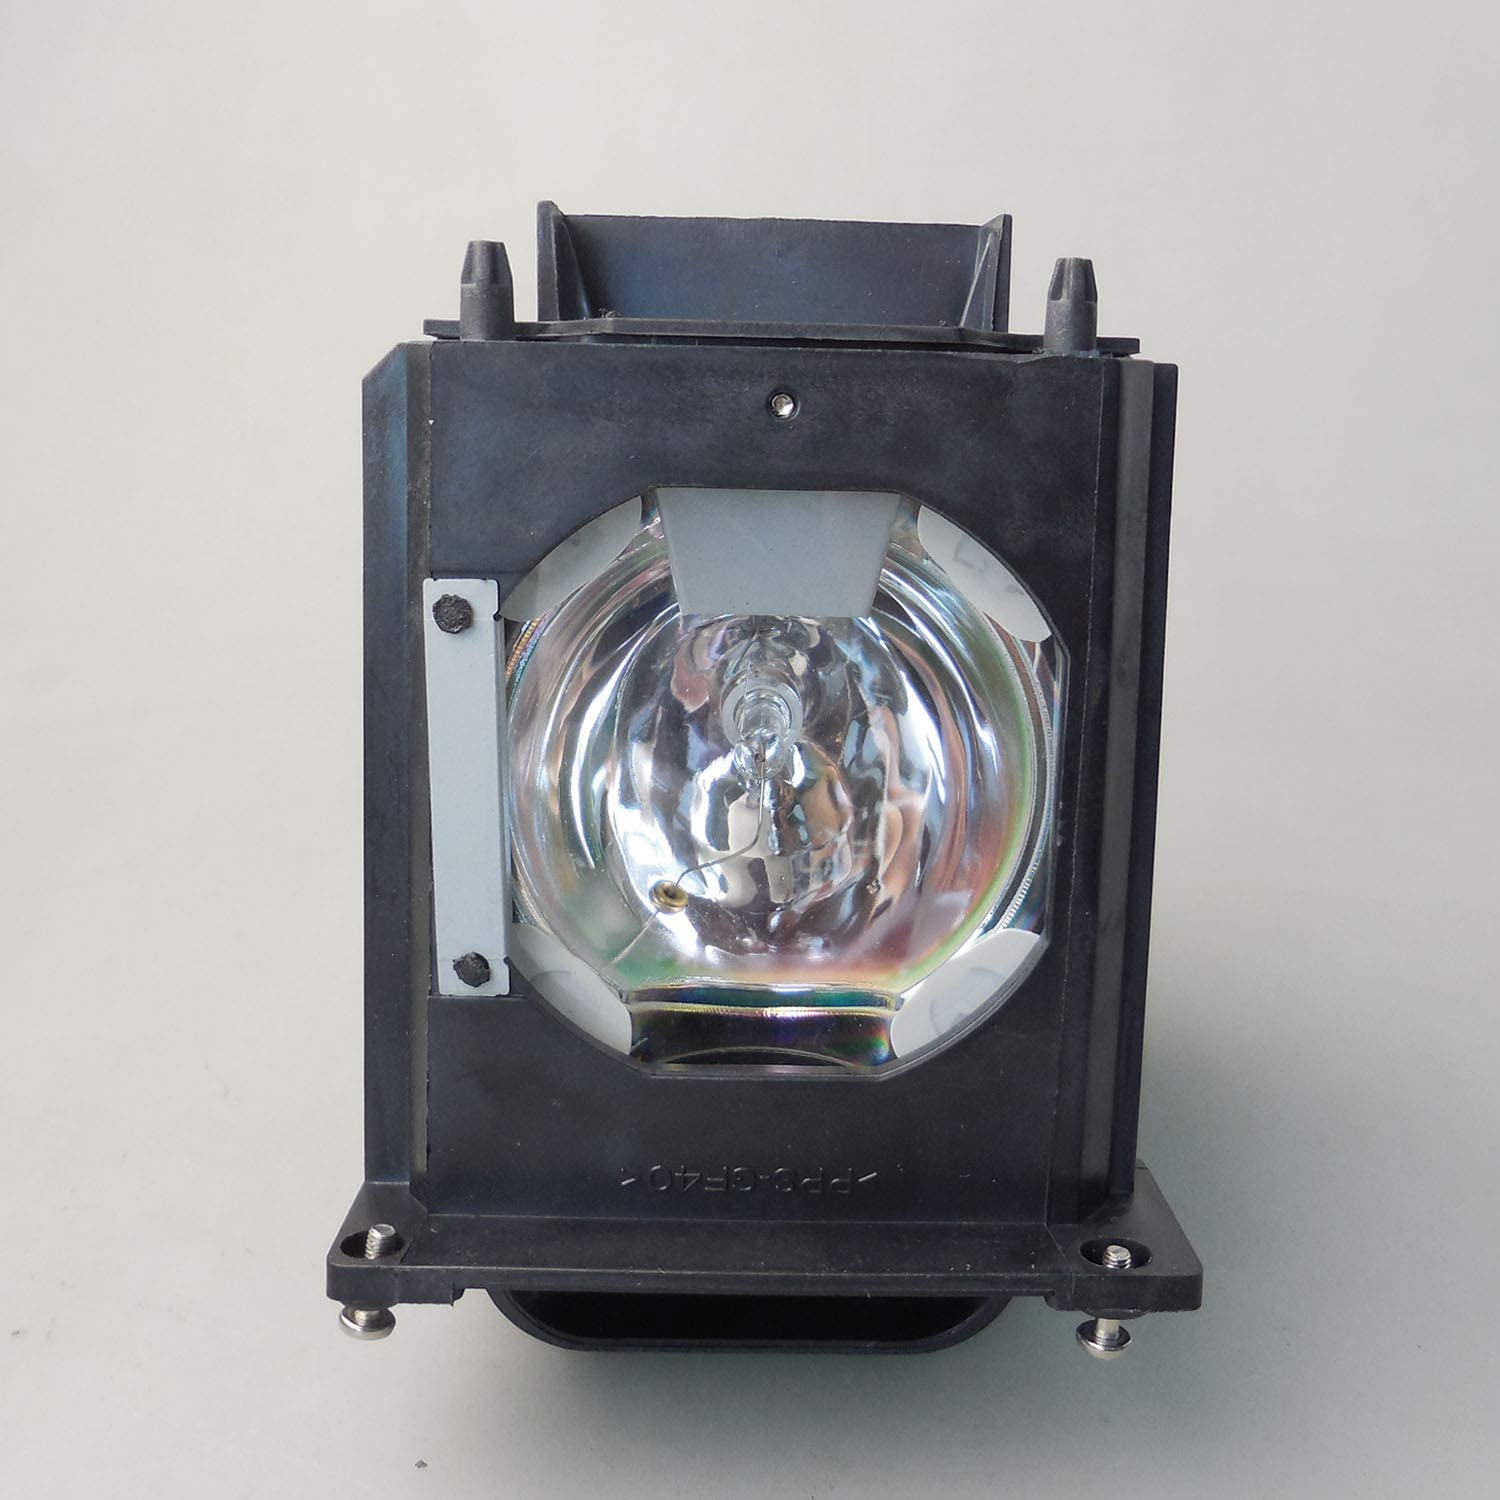 Compatible 915B403001 for WD73736 WD73737 WD73835 WD73837 WD73C8 WD73C9 Mitsubishi Lamp with Housing by Amazing Lamps